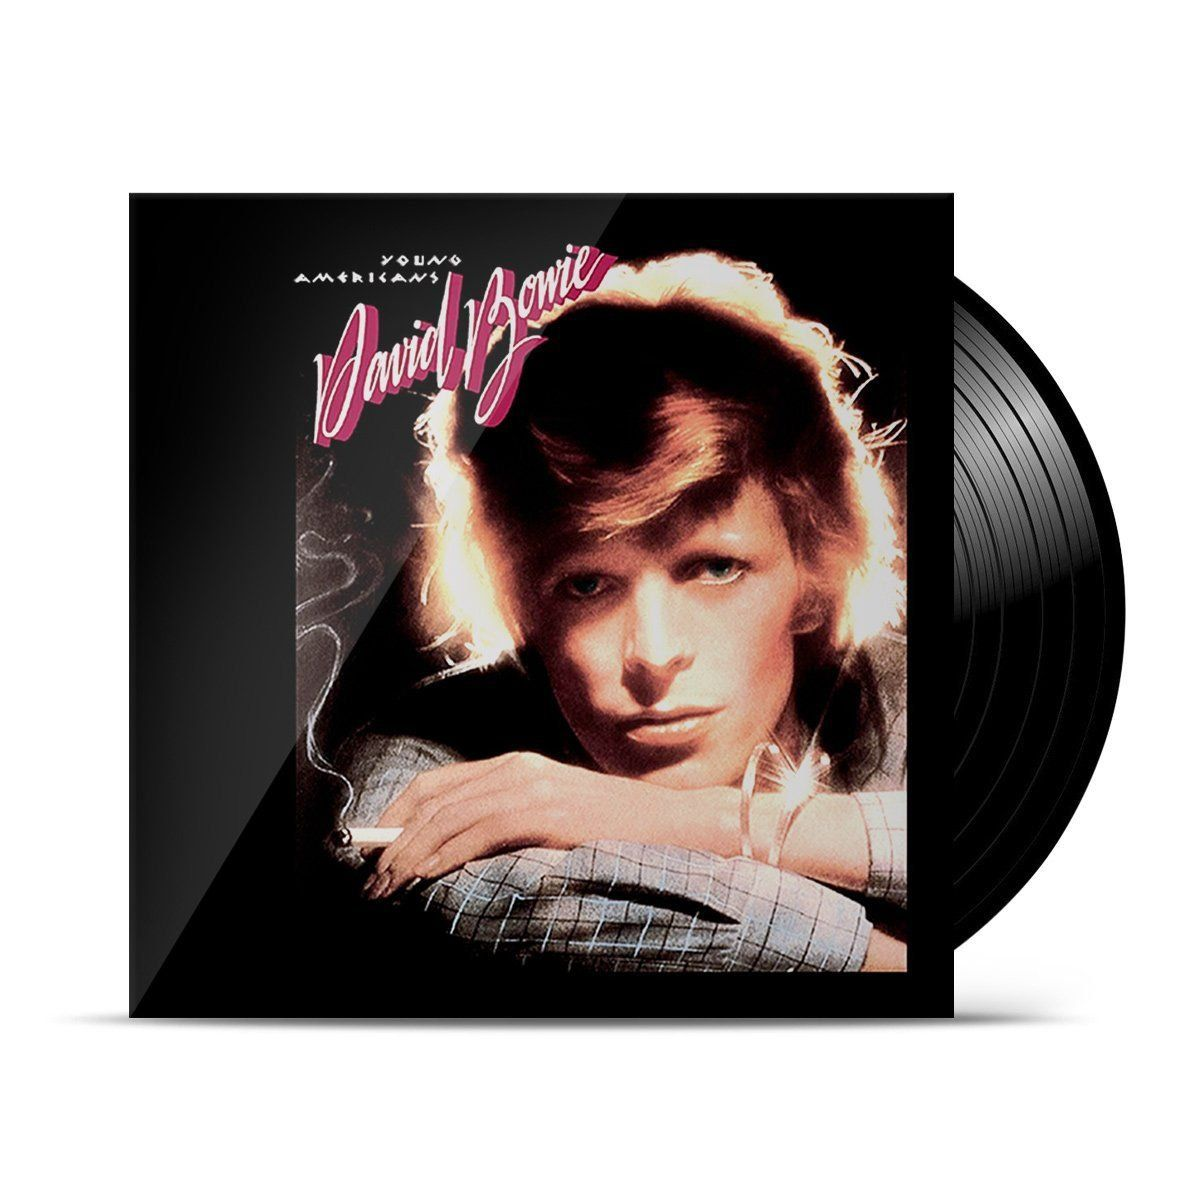 LP David Bowie Young Americans  - bandUP Store Marketplace